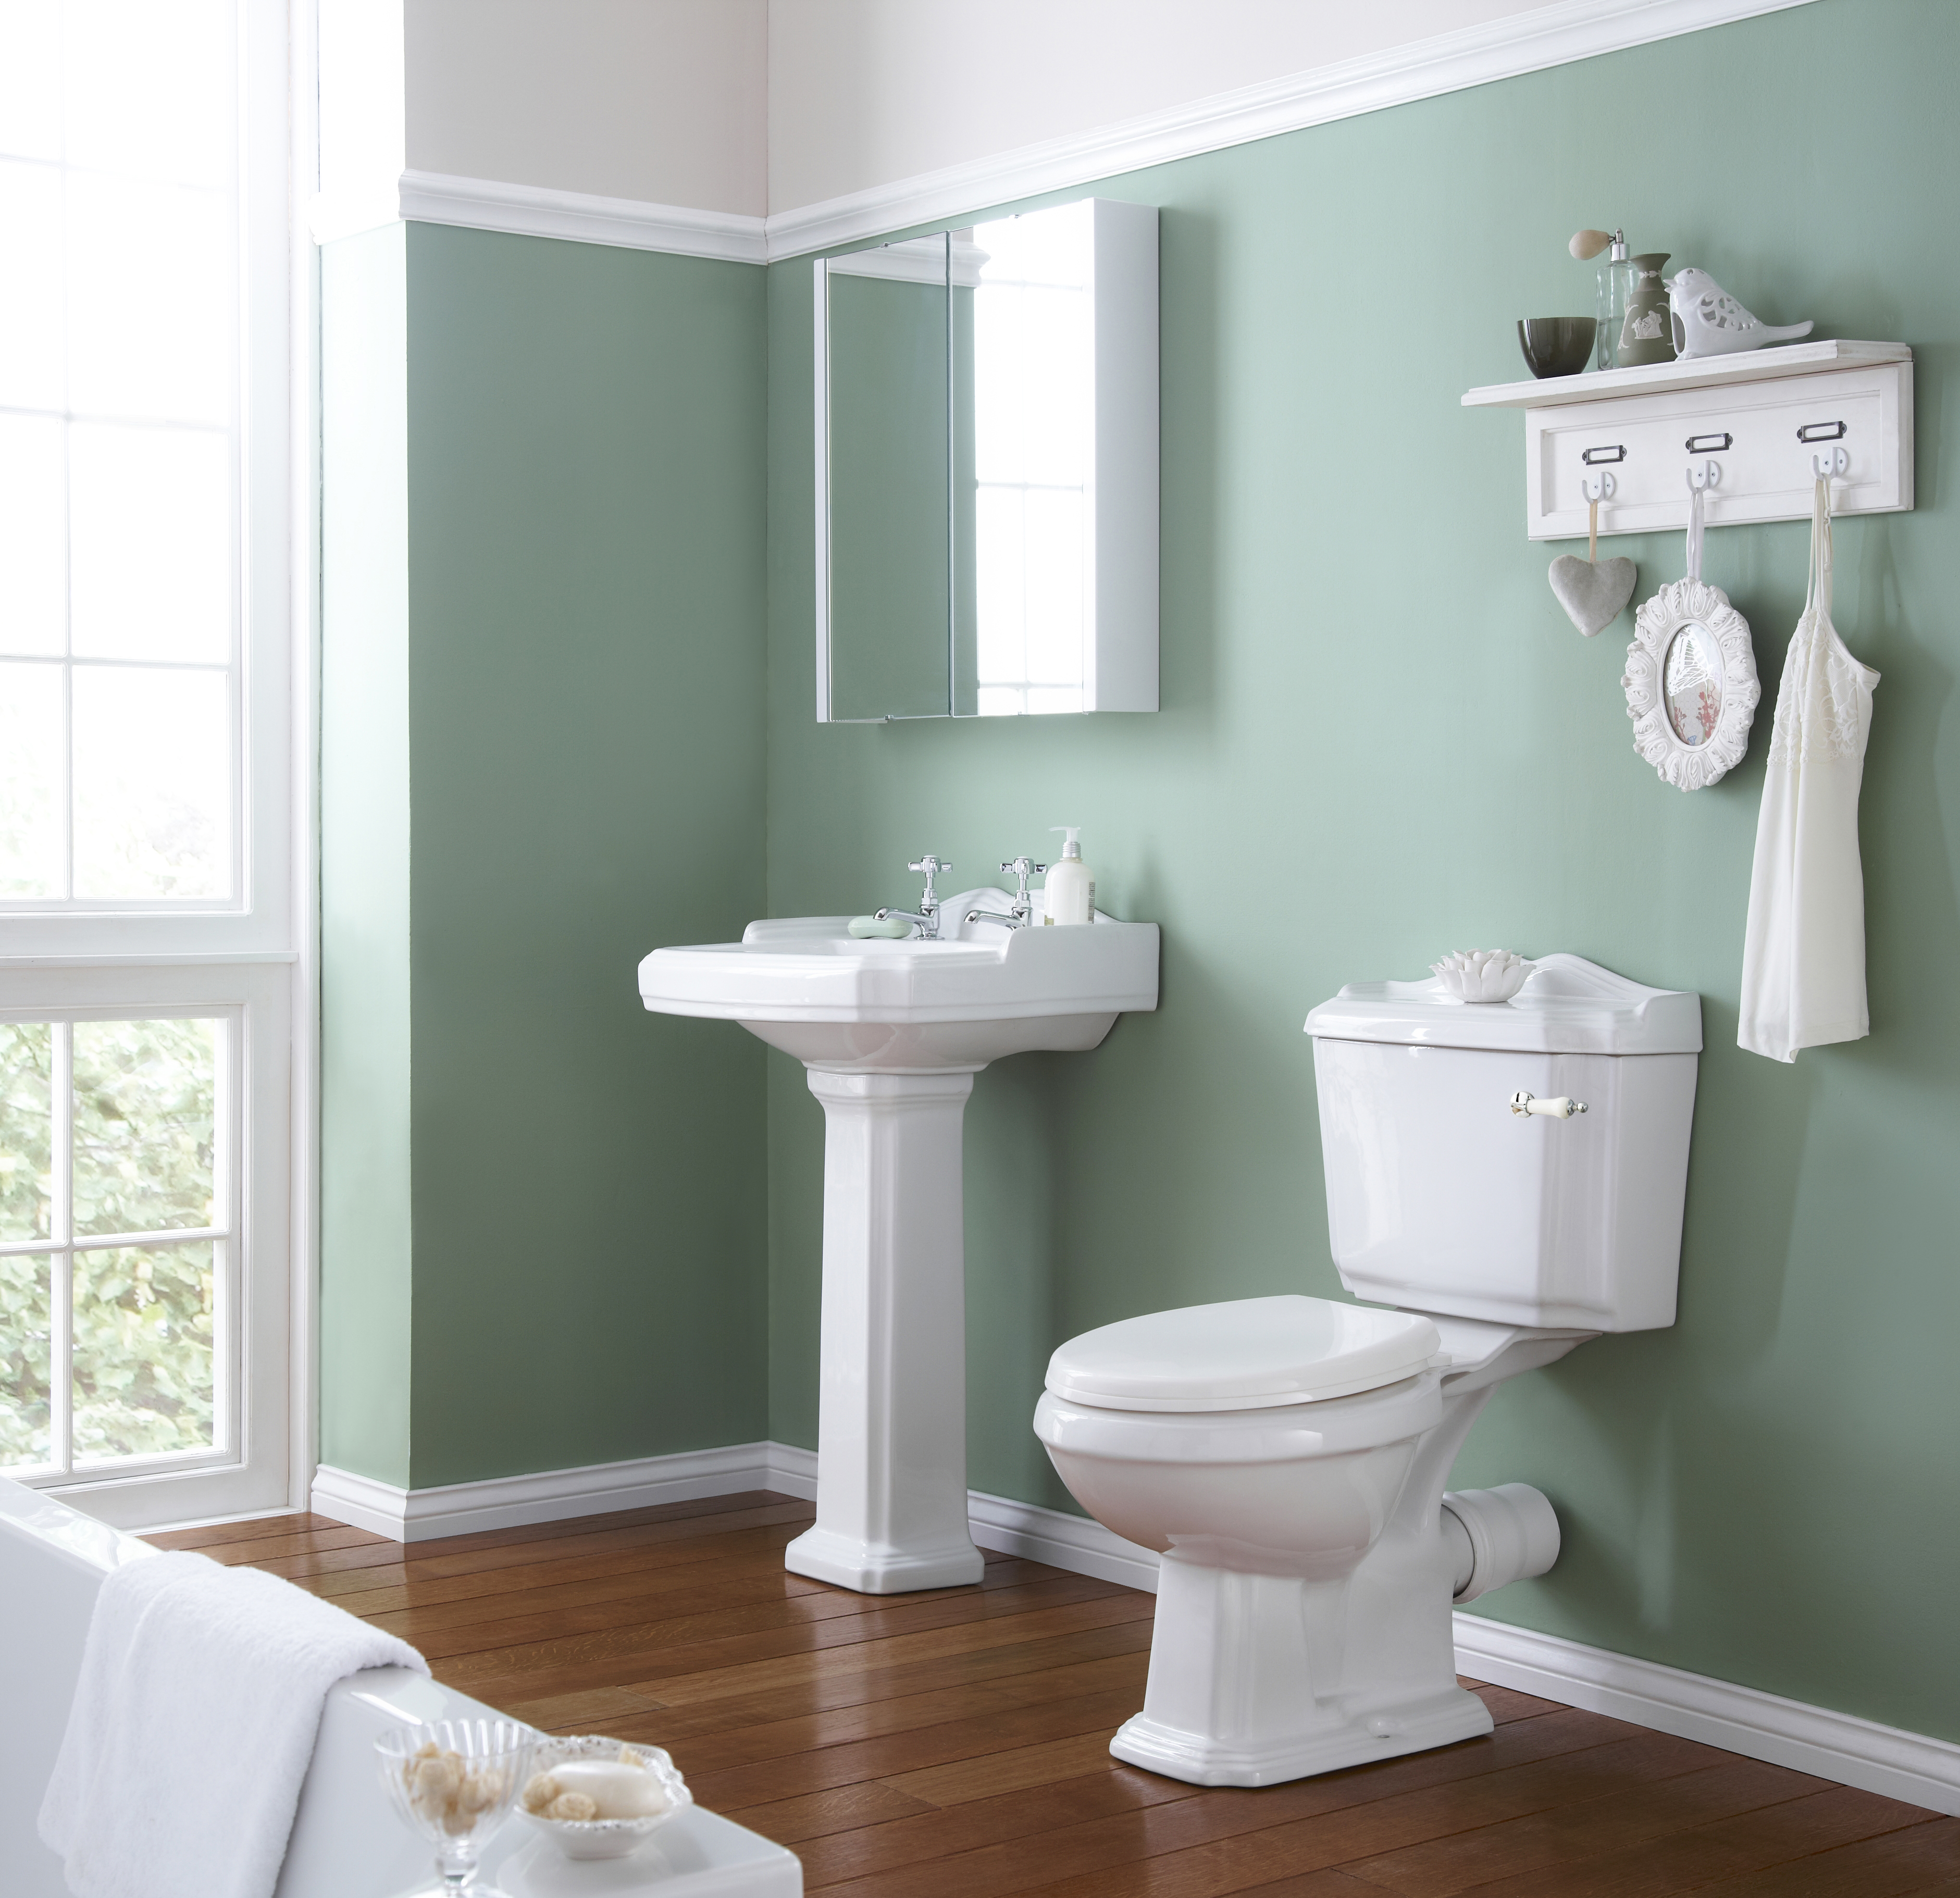 Wholesale Domestic Bathroom Blog - The Buyer\'s Guide to a Vintage ...